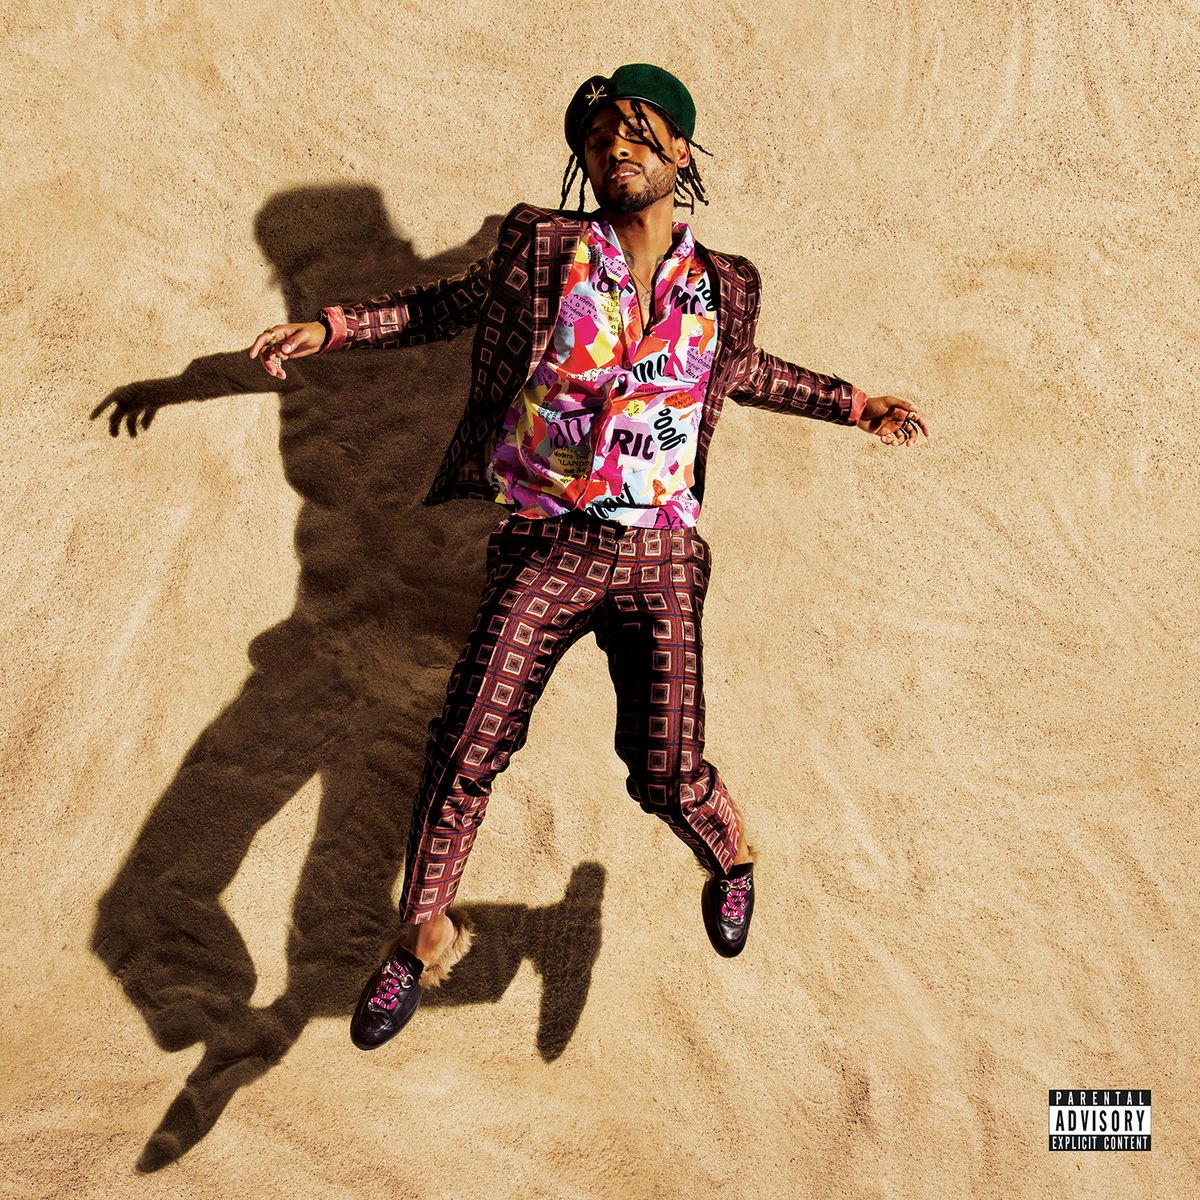 """New Music: Miguel – """"Come Through & Chill"""" feat. J. Cole & Salaam Remi"""